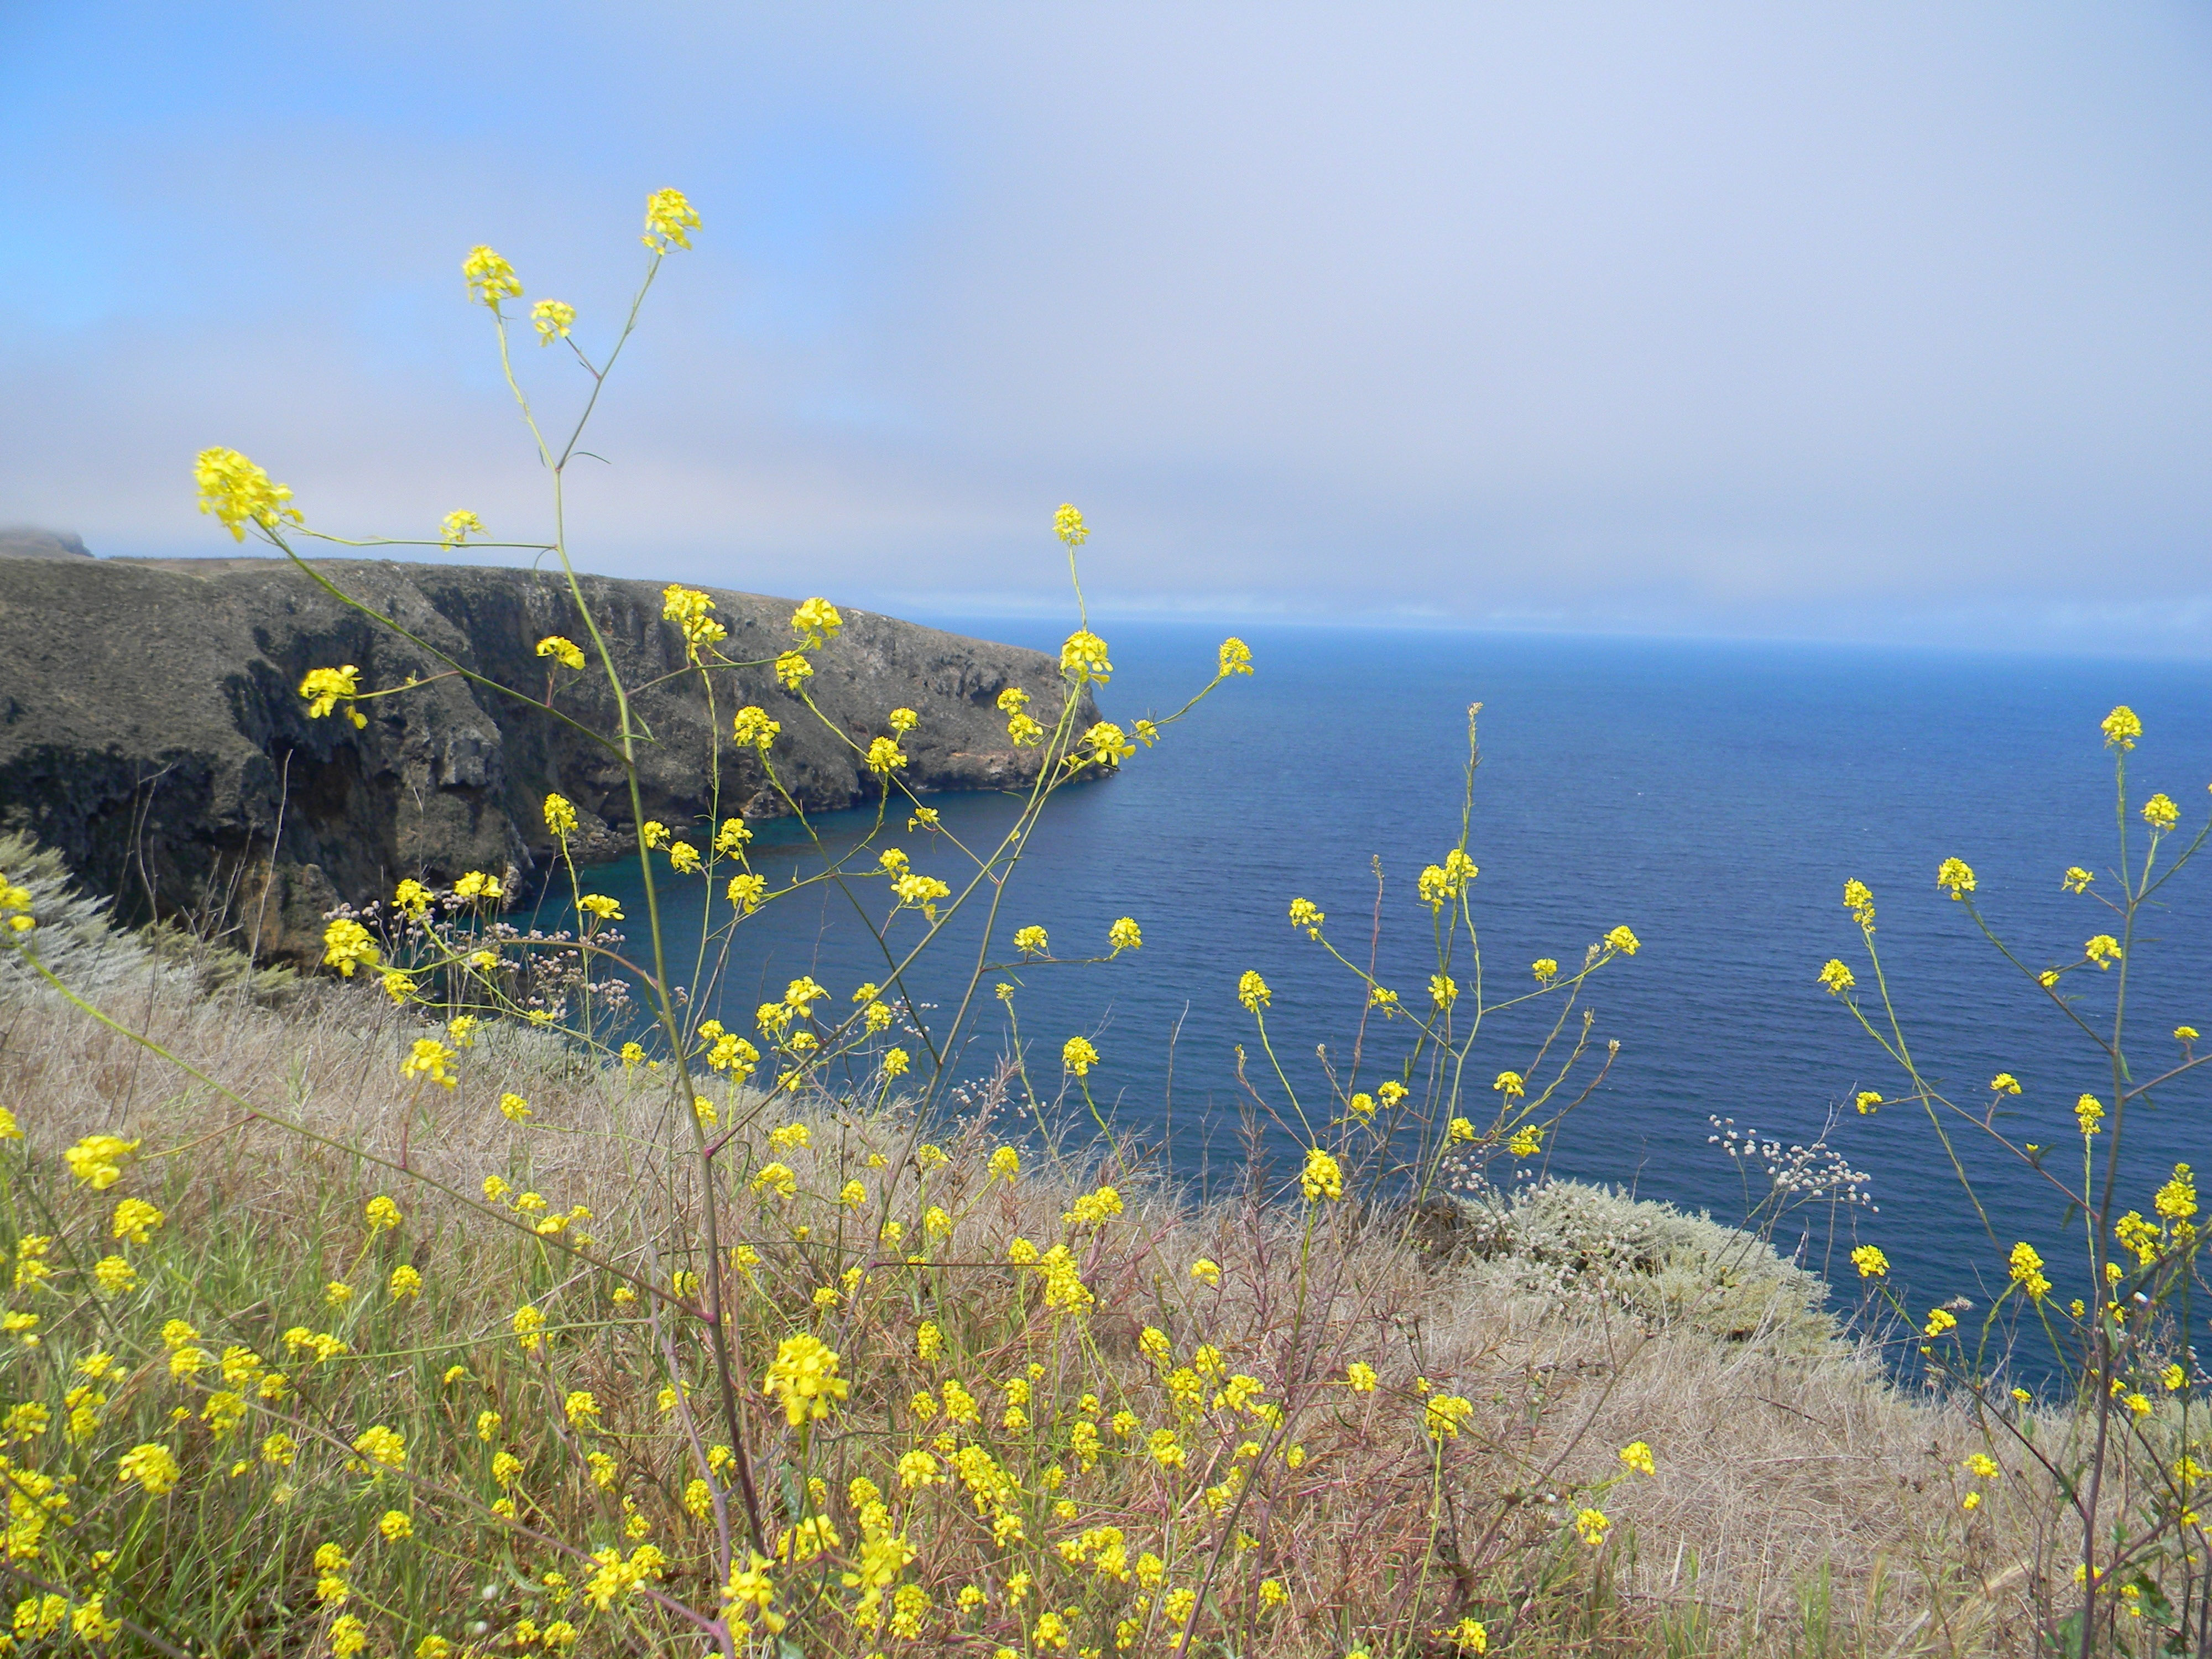 Seashore With Yellow Flowers At Channel Islands National Park